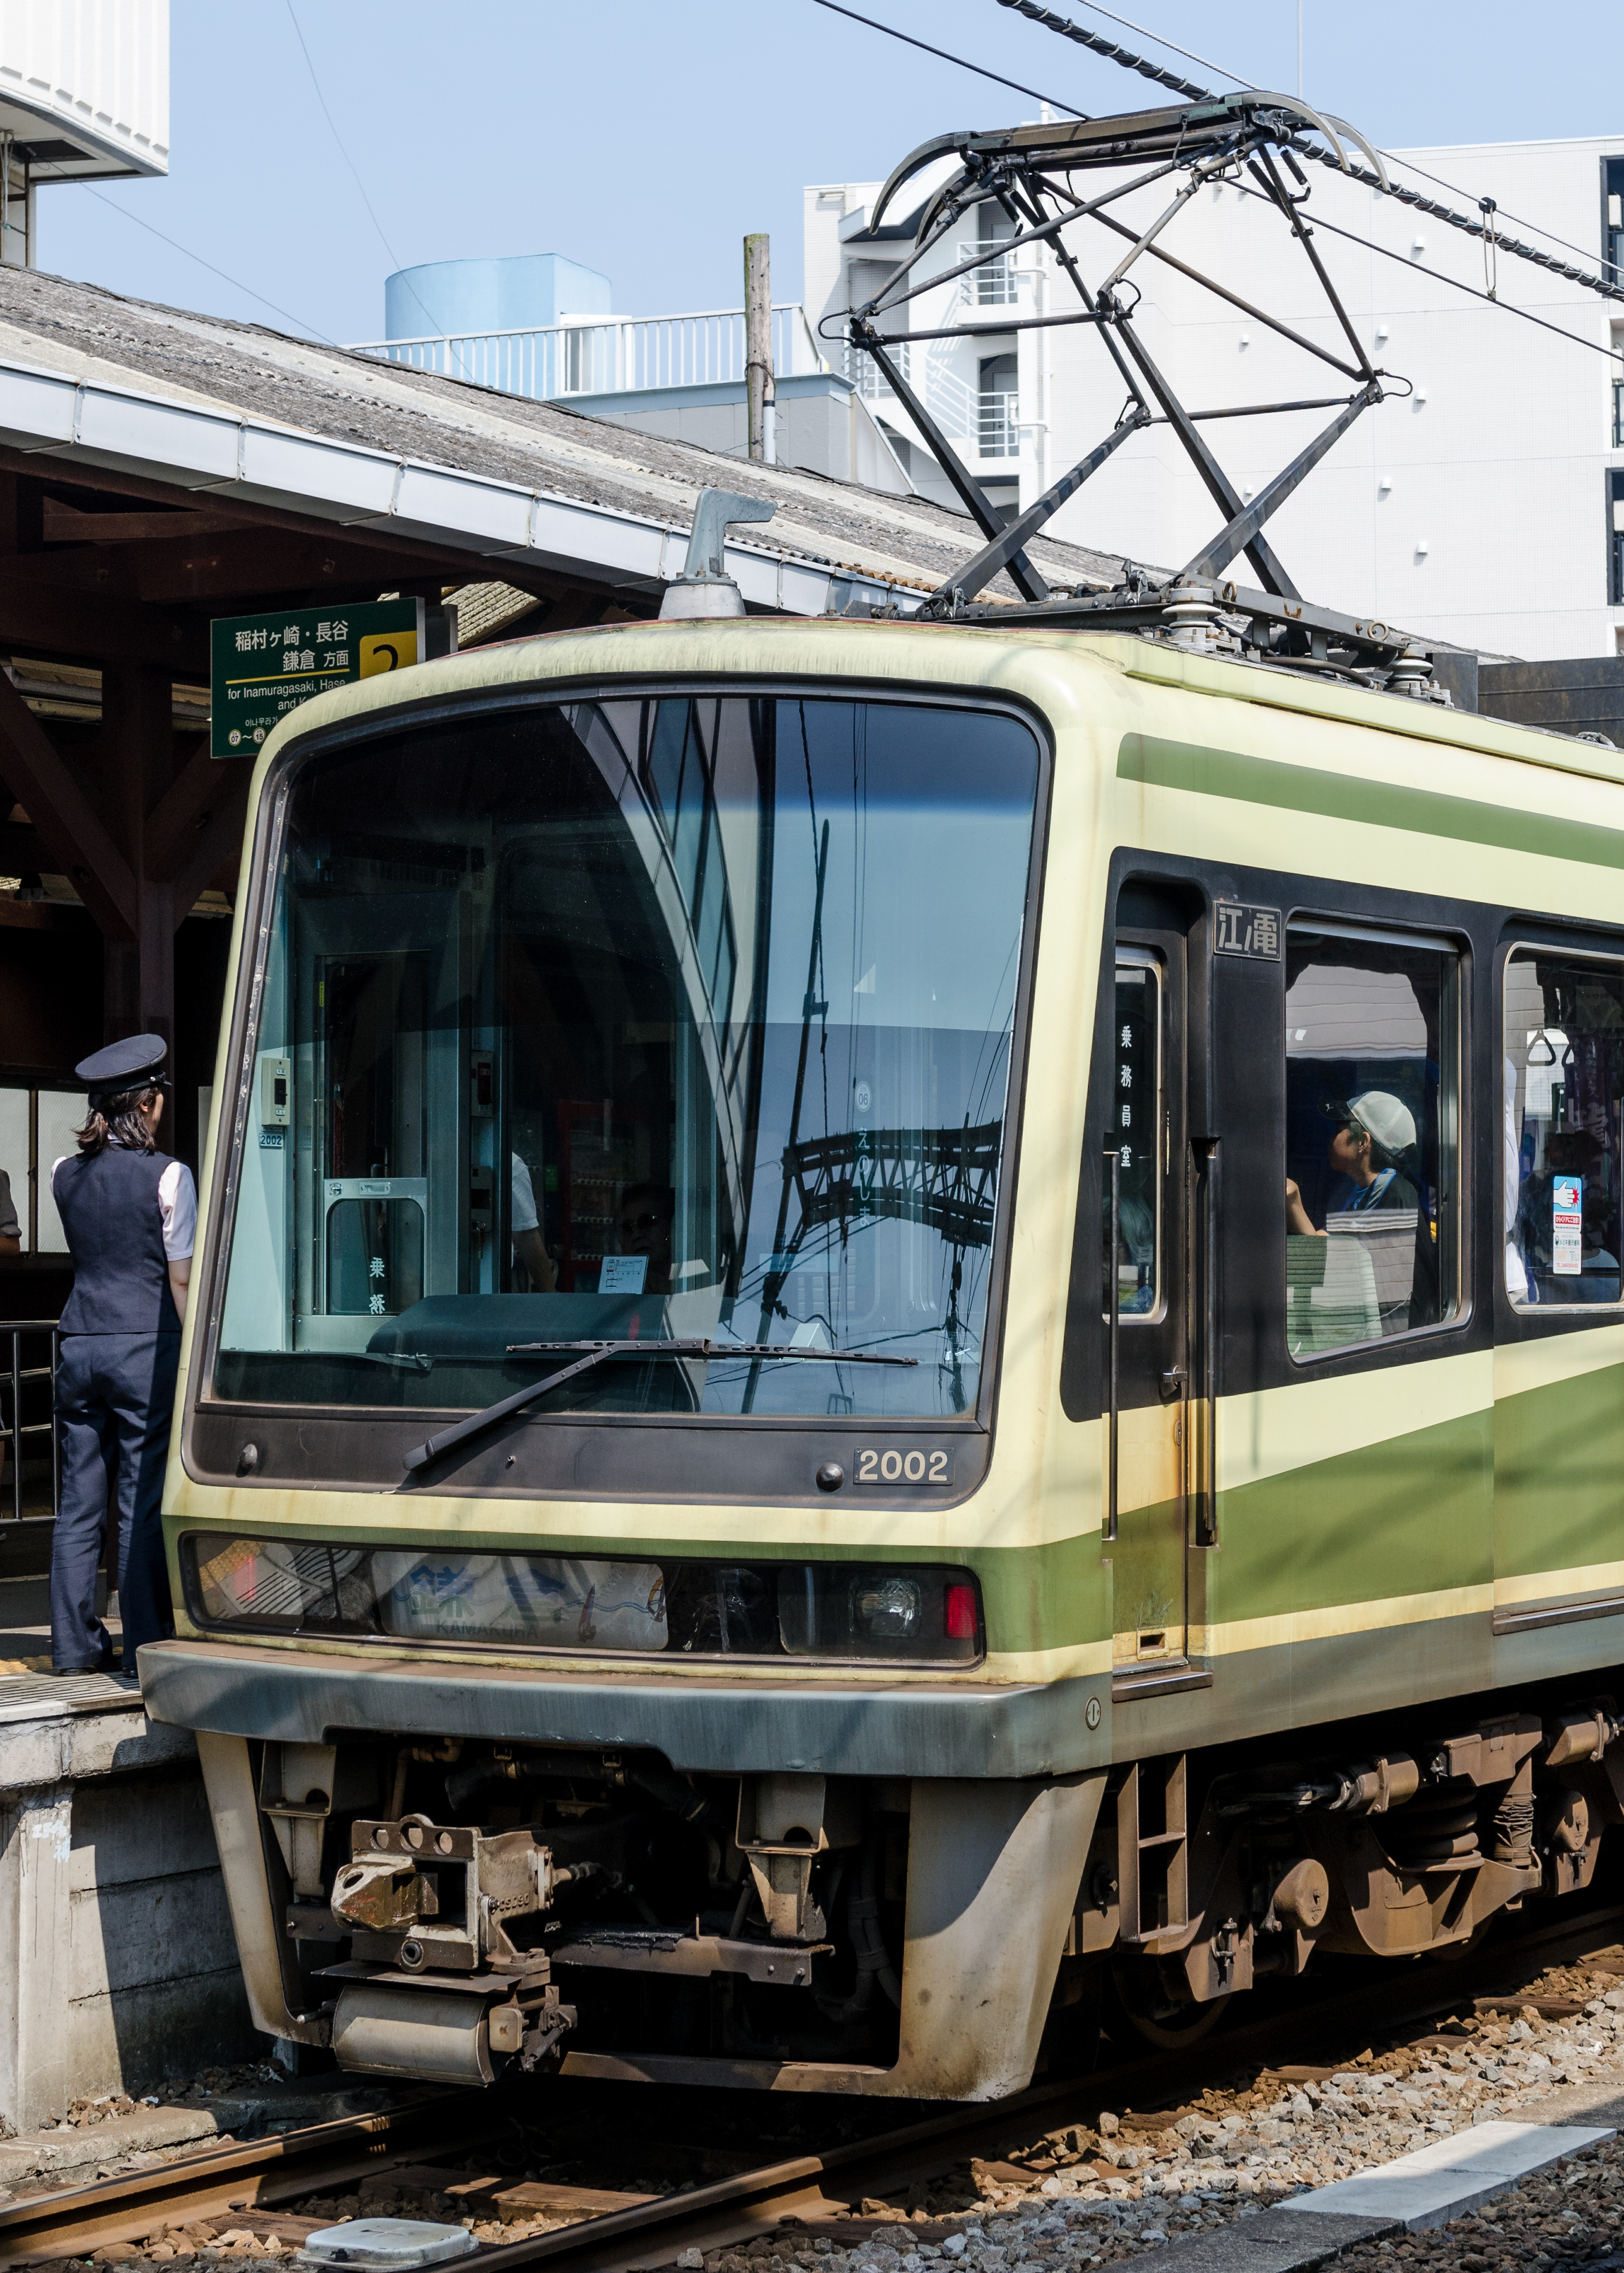 Enoden 2002 at Enoshima Station